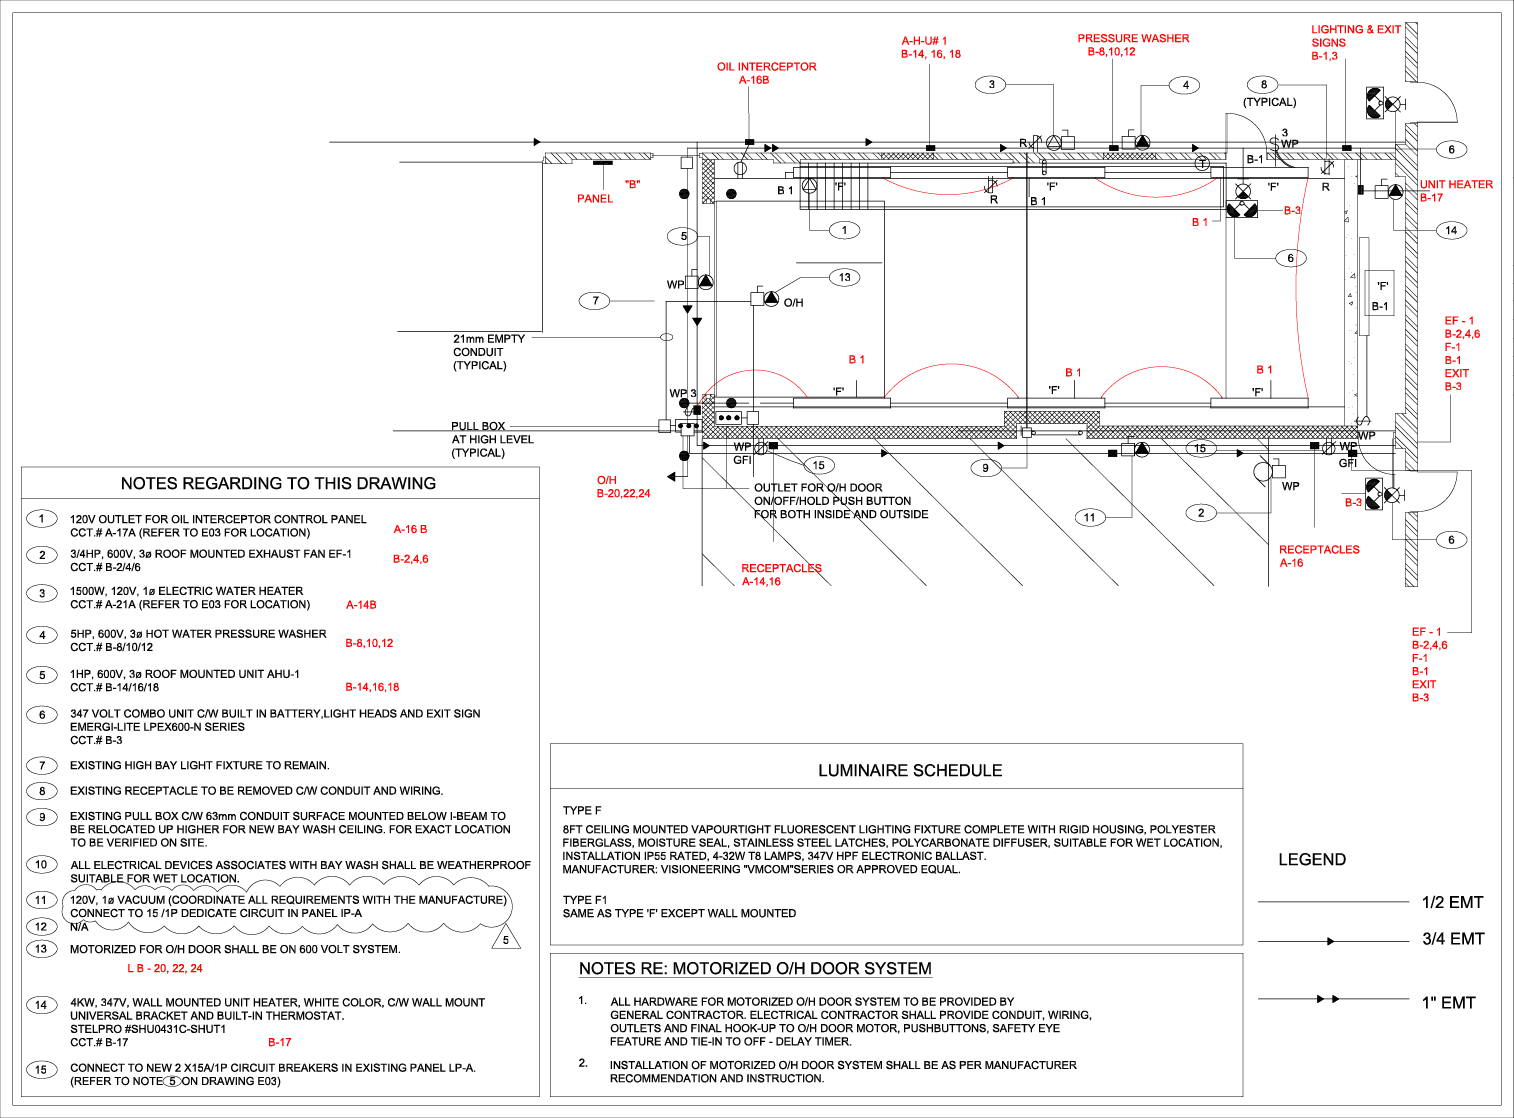 Electrical Lighting & Power Layout (AutoCAD)